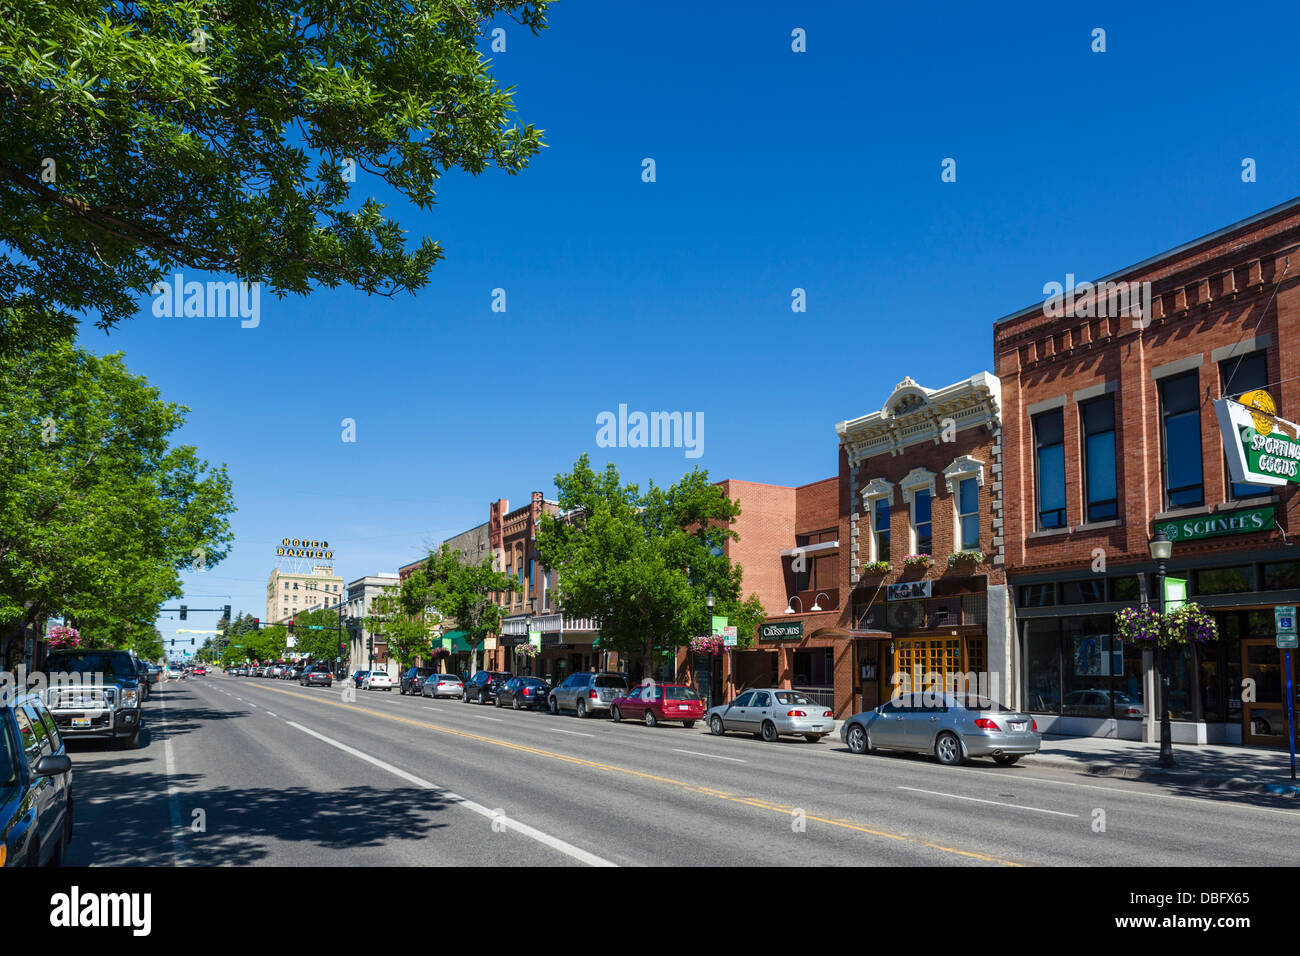 Stock Photo Main Street In Downtown Bozeman Montana Usa 58742157 furthermore 2018 Jeep  pass Limited 4wd Sport Utility 3c4njdcb5jt114412 also 161018174440 likewise 1957 Ferrari 335 S Almost Breaks Auction Record At 35 7 Million besides Lancia Voyager. on chrysler town and country